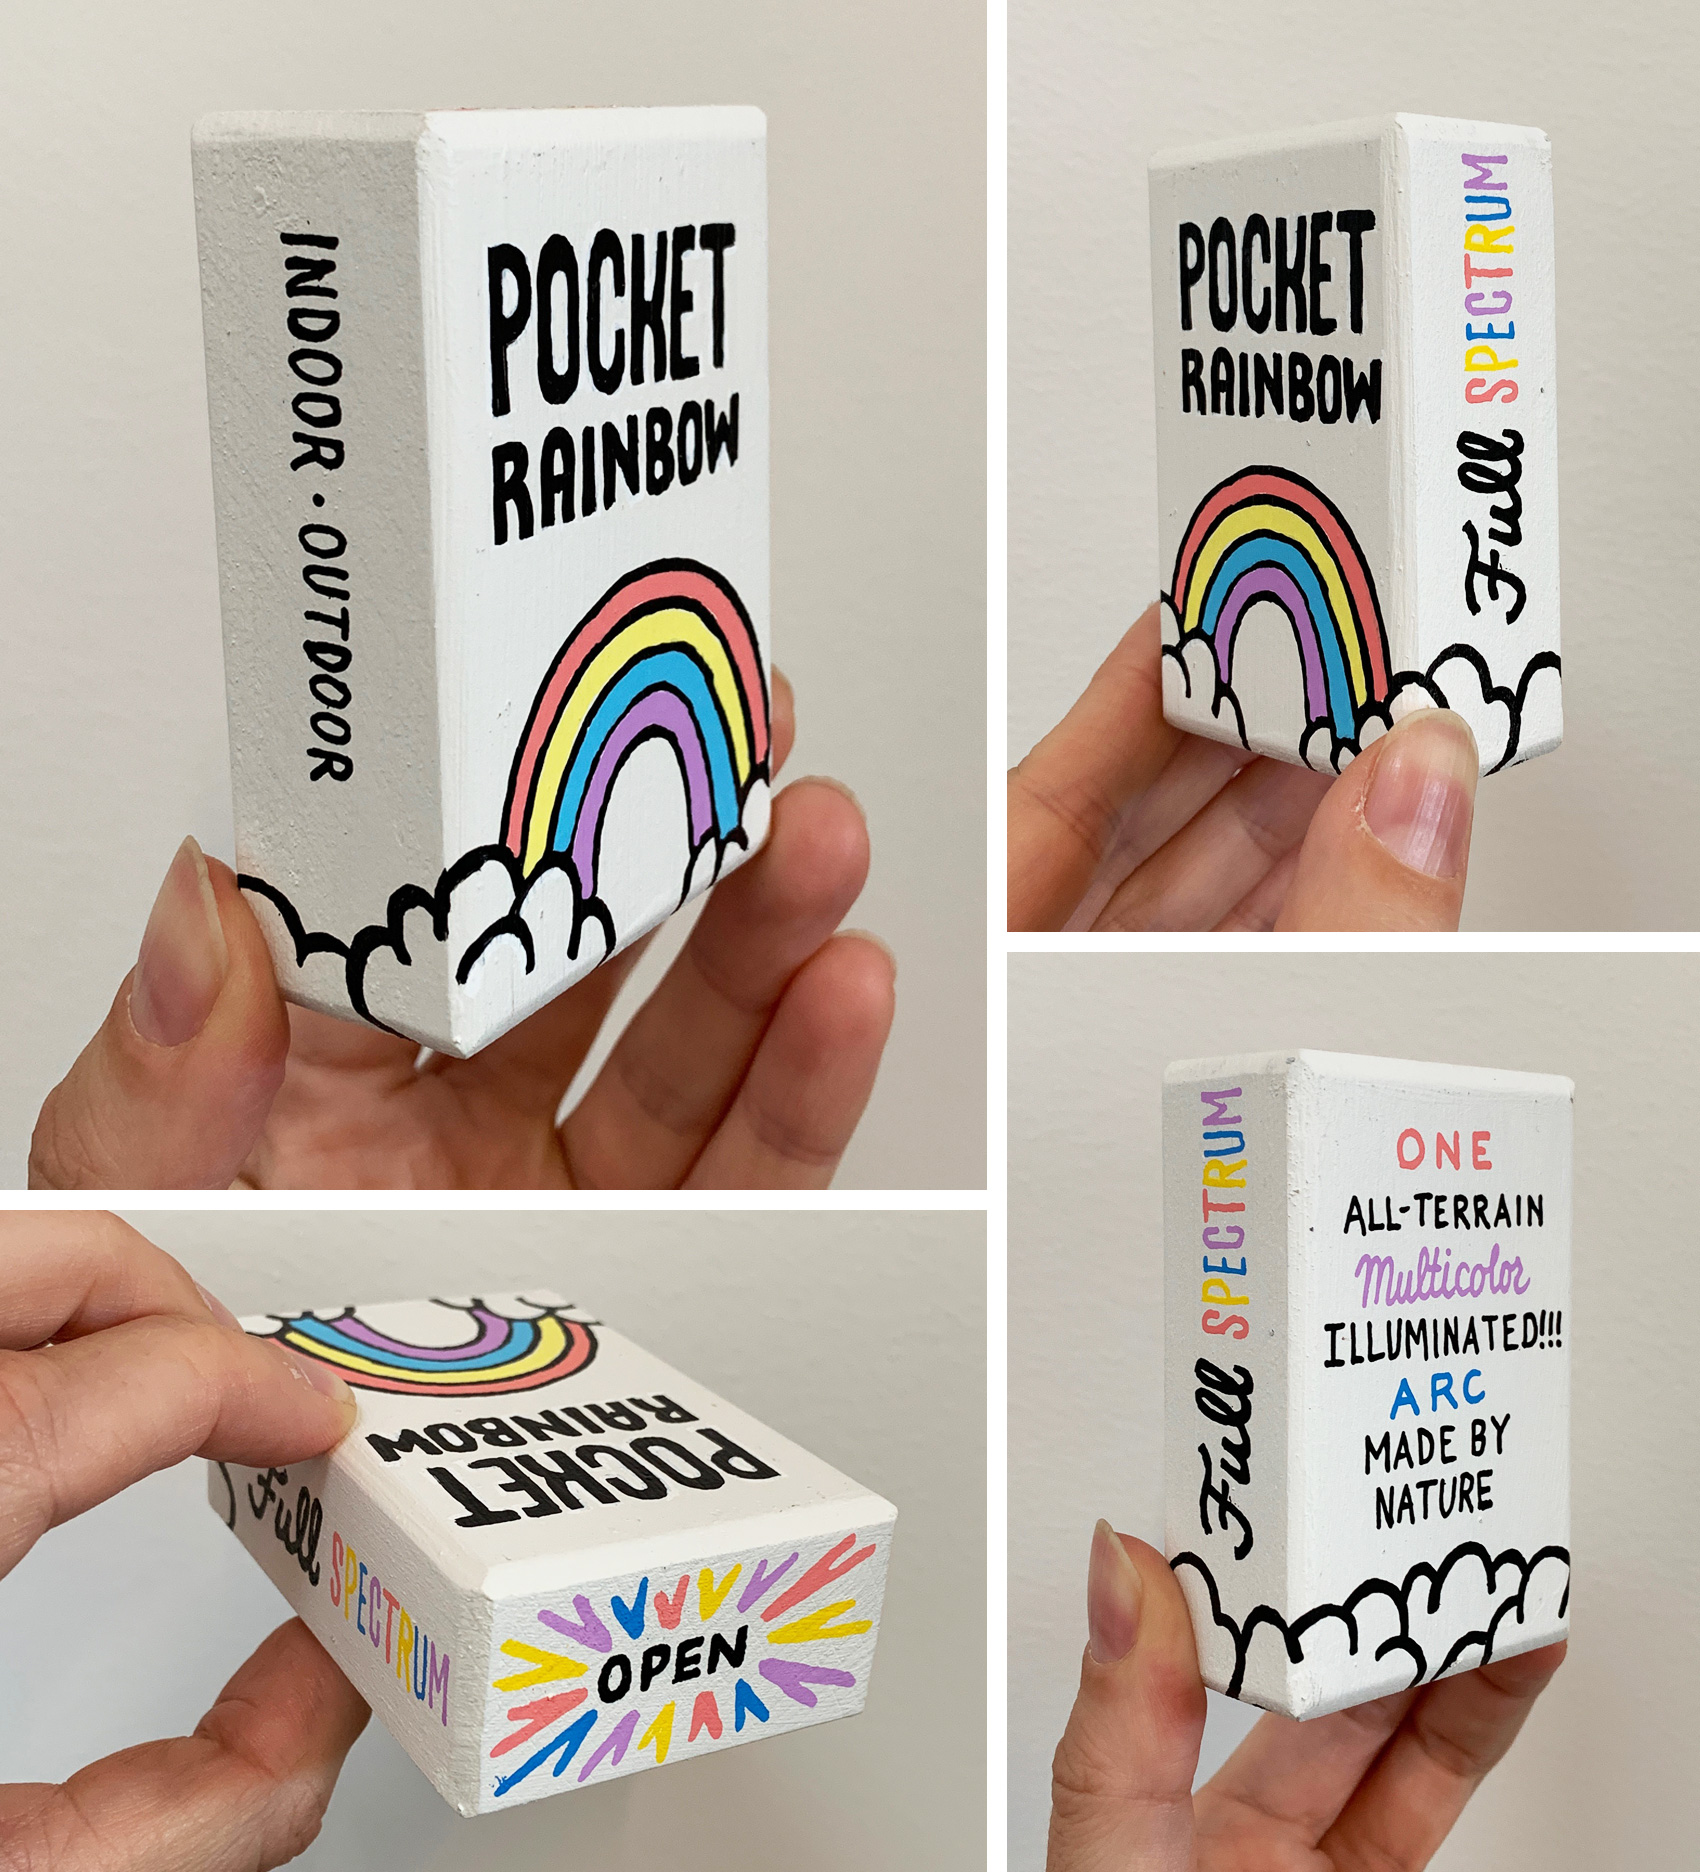 Small painted wooden box to resemble a package - of a Pocket Rainbow. One full-spectrum indoor / outdoor, all-terrain, multicolor, illuminated arc made by nature.